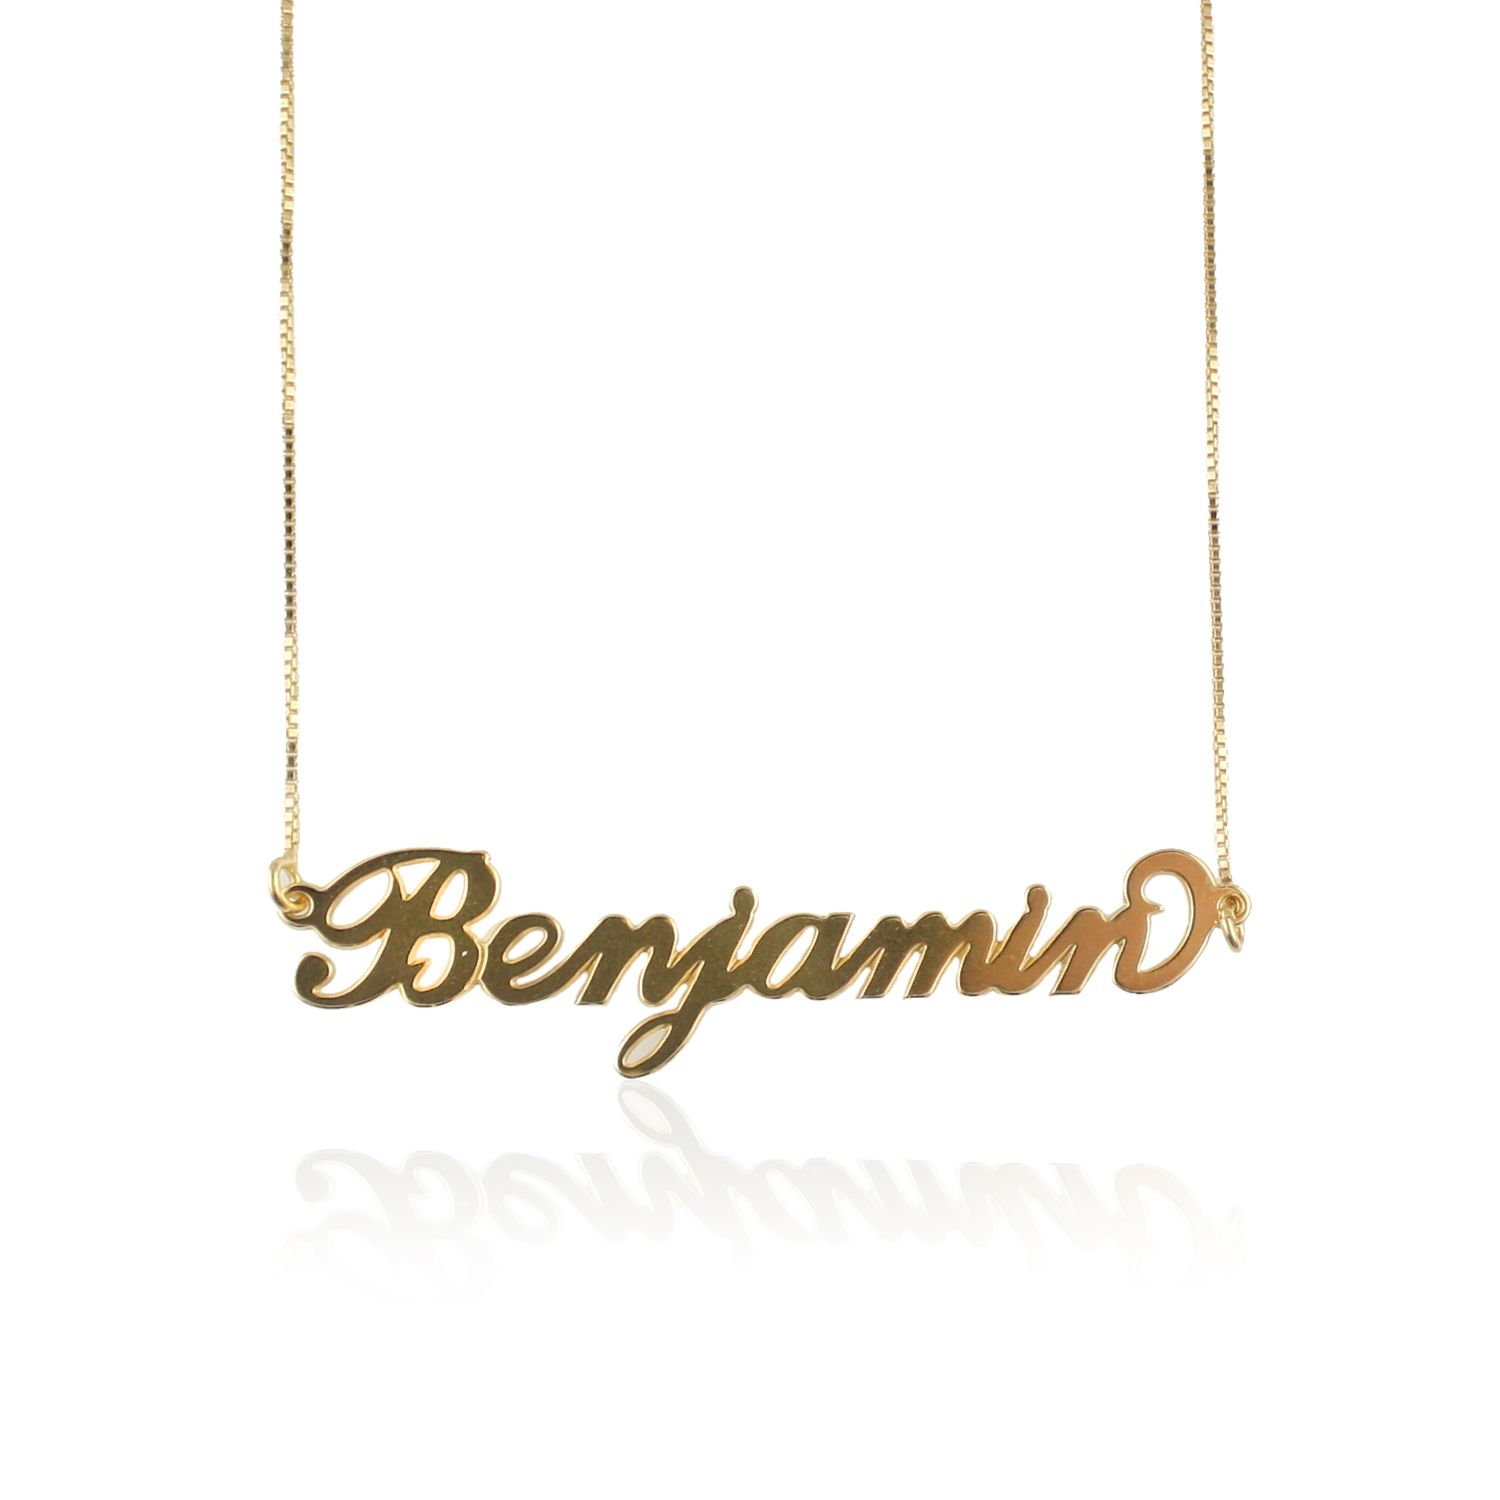 sterling over script gold product cursive name wid necklace